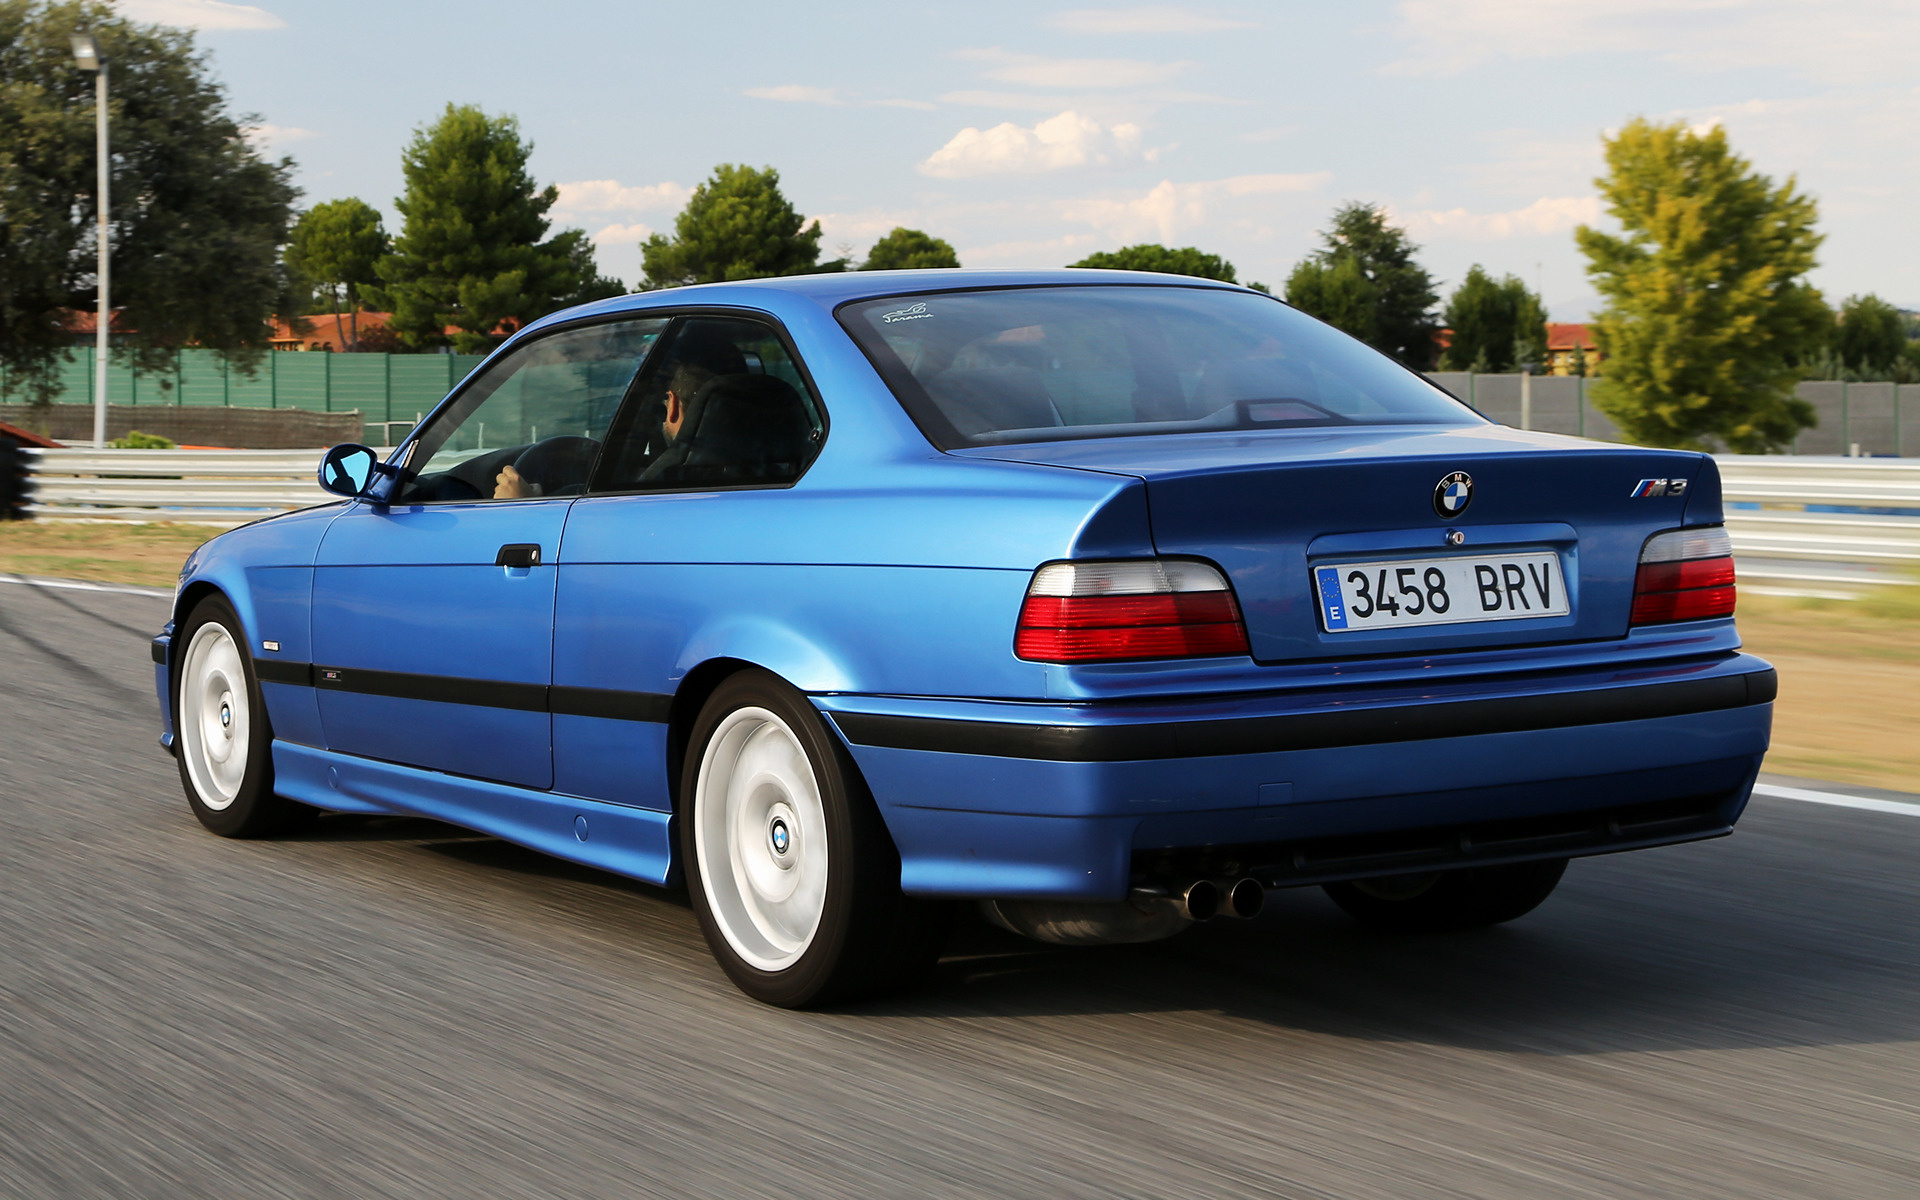 BMW M3 Coupe (1992) Wallpapers and HD Images - Car Pixel